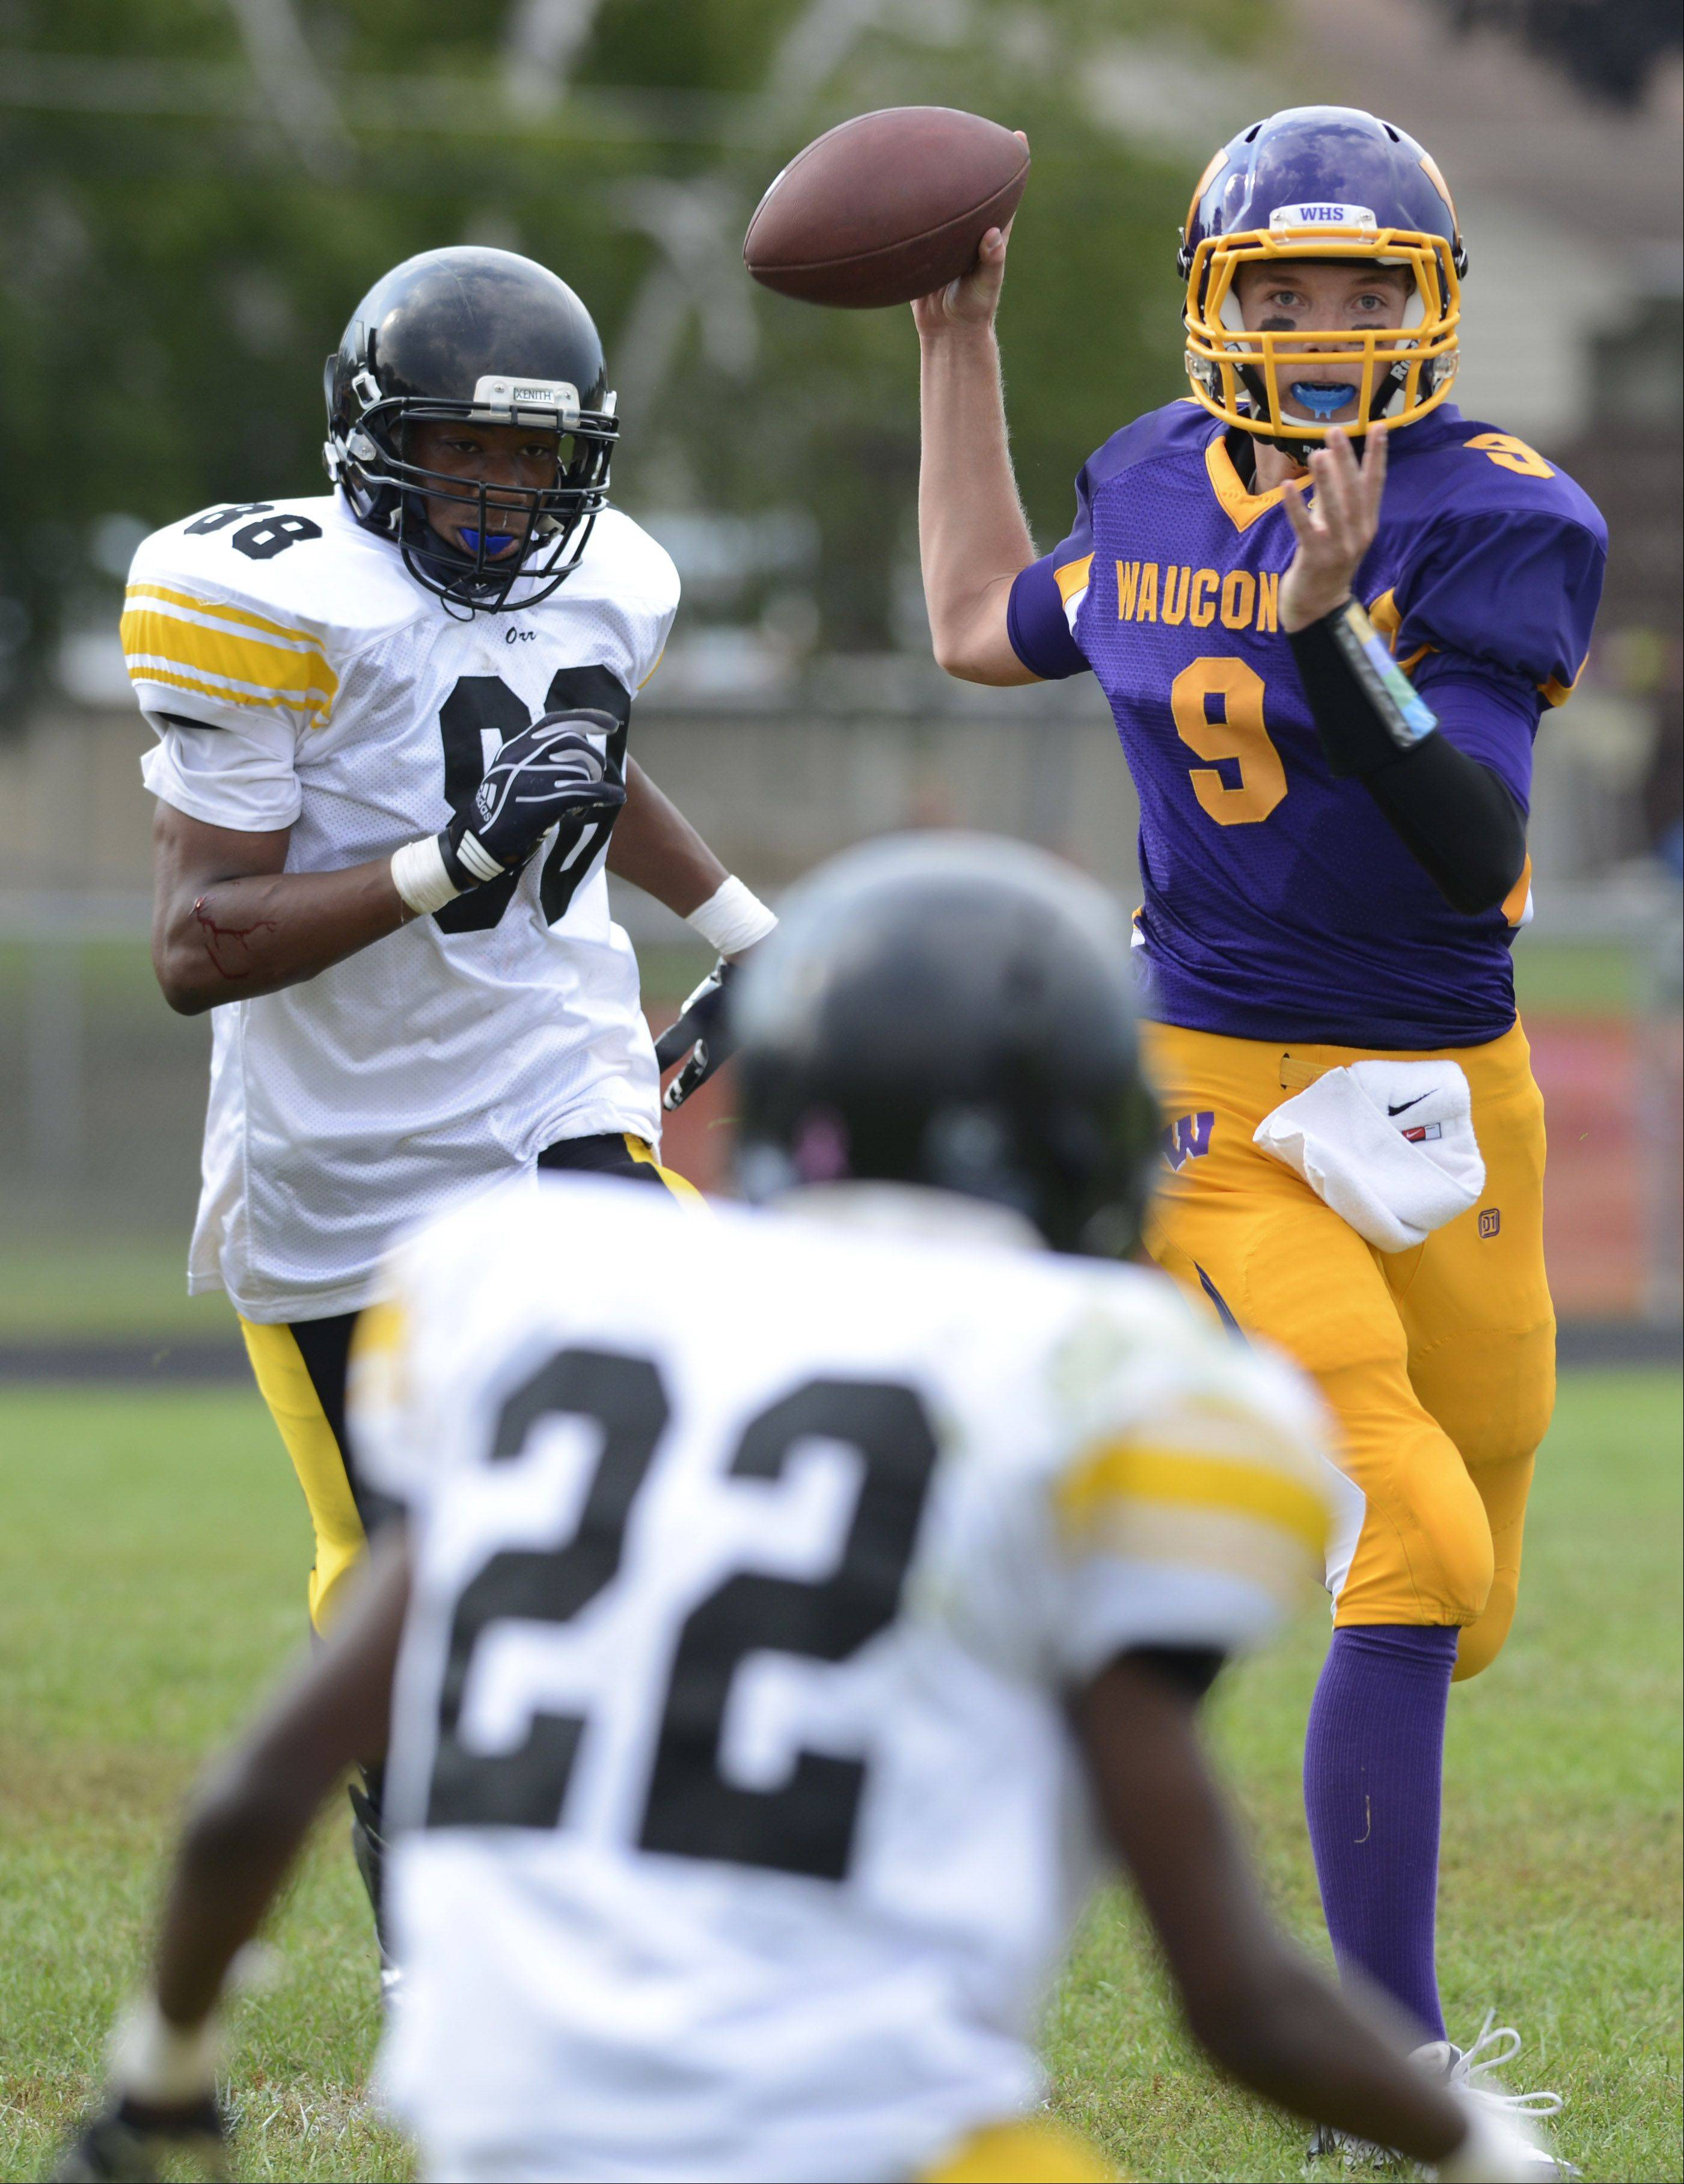 Wauconda quarterback Kevin Malisheski throws a pass during Saturday's game against Orr.